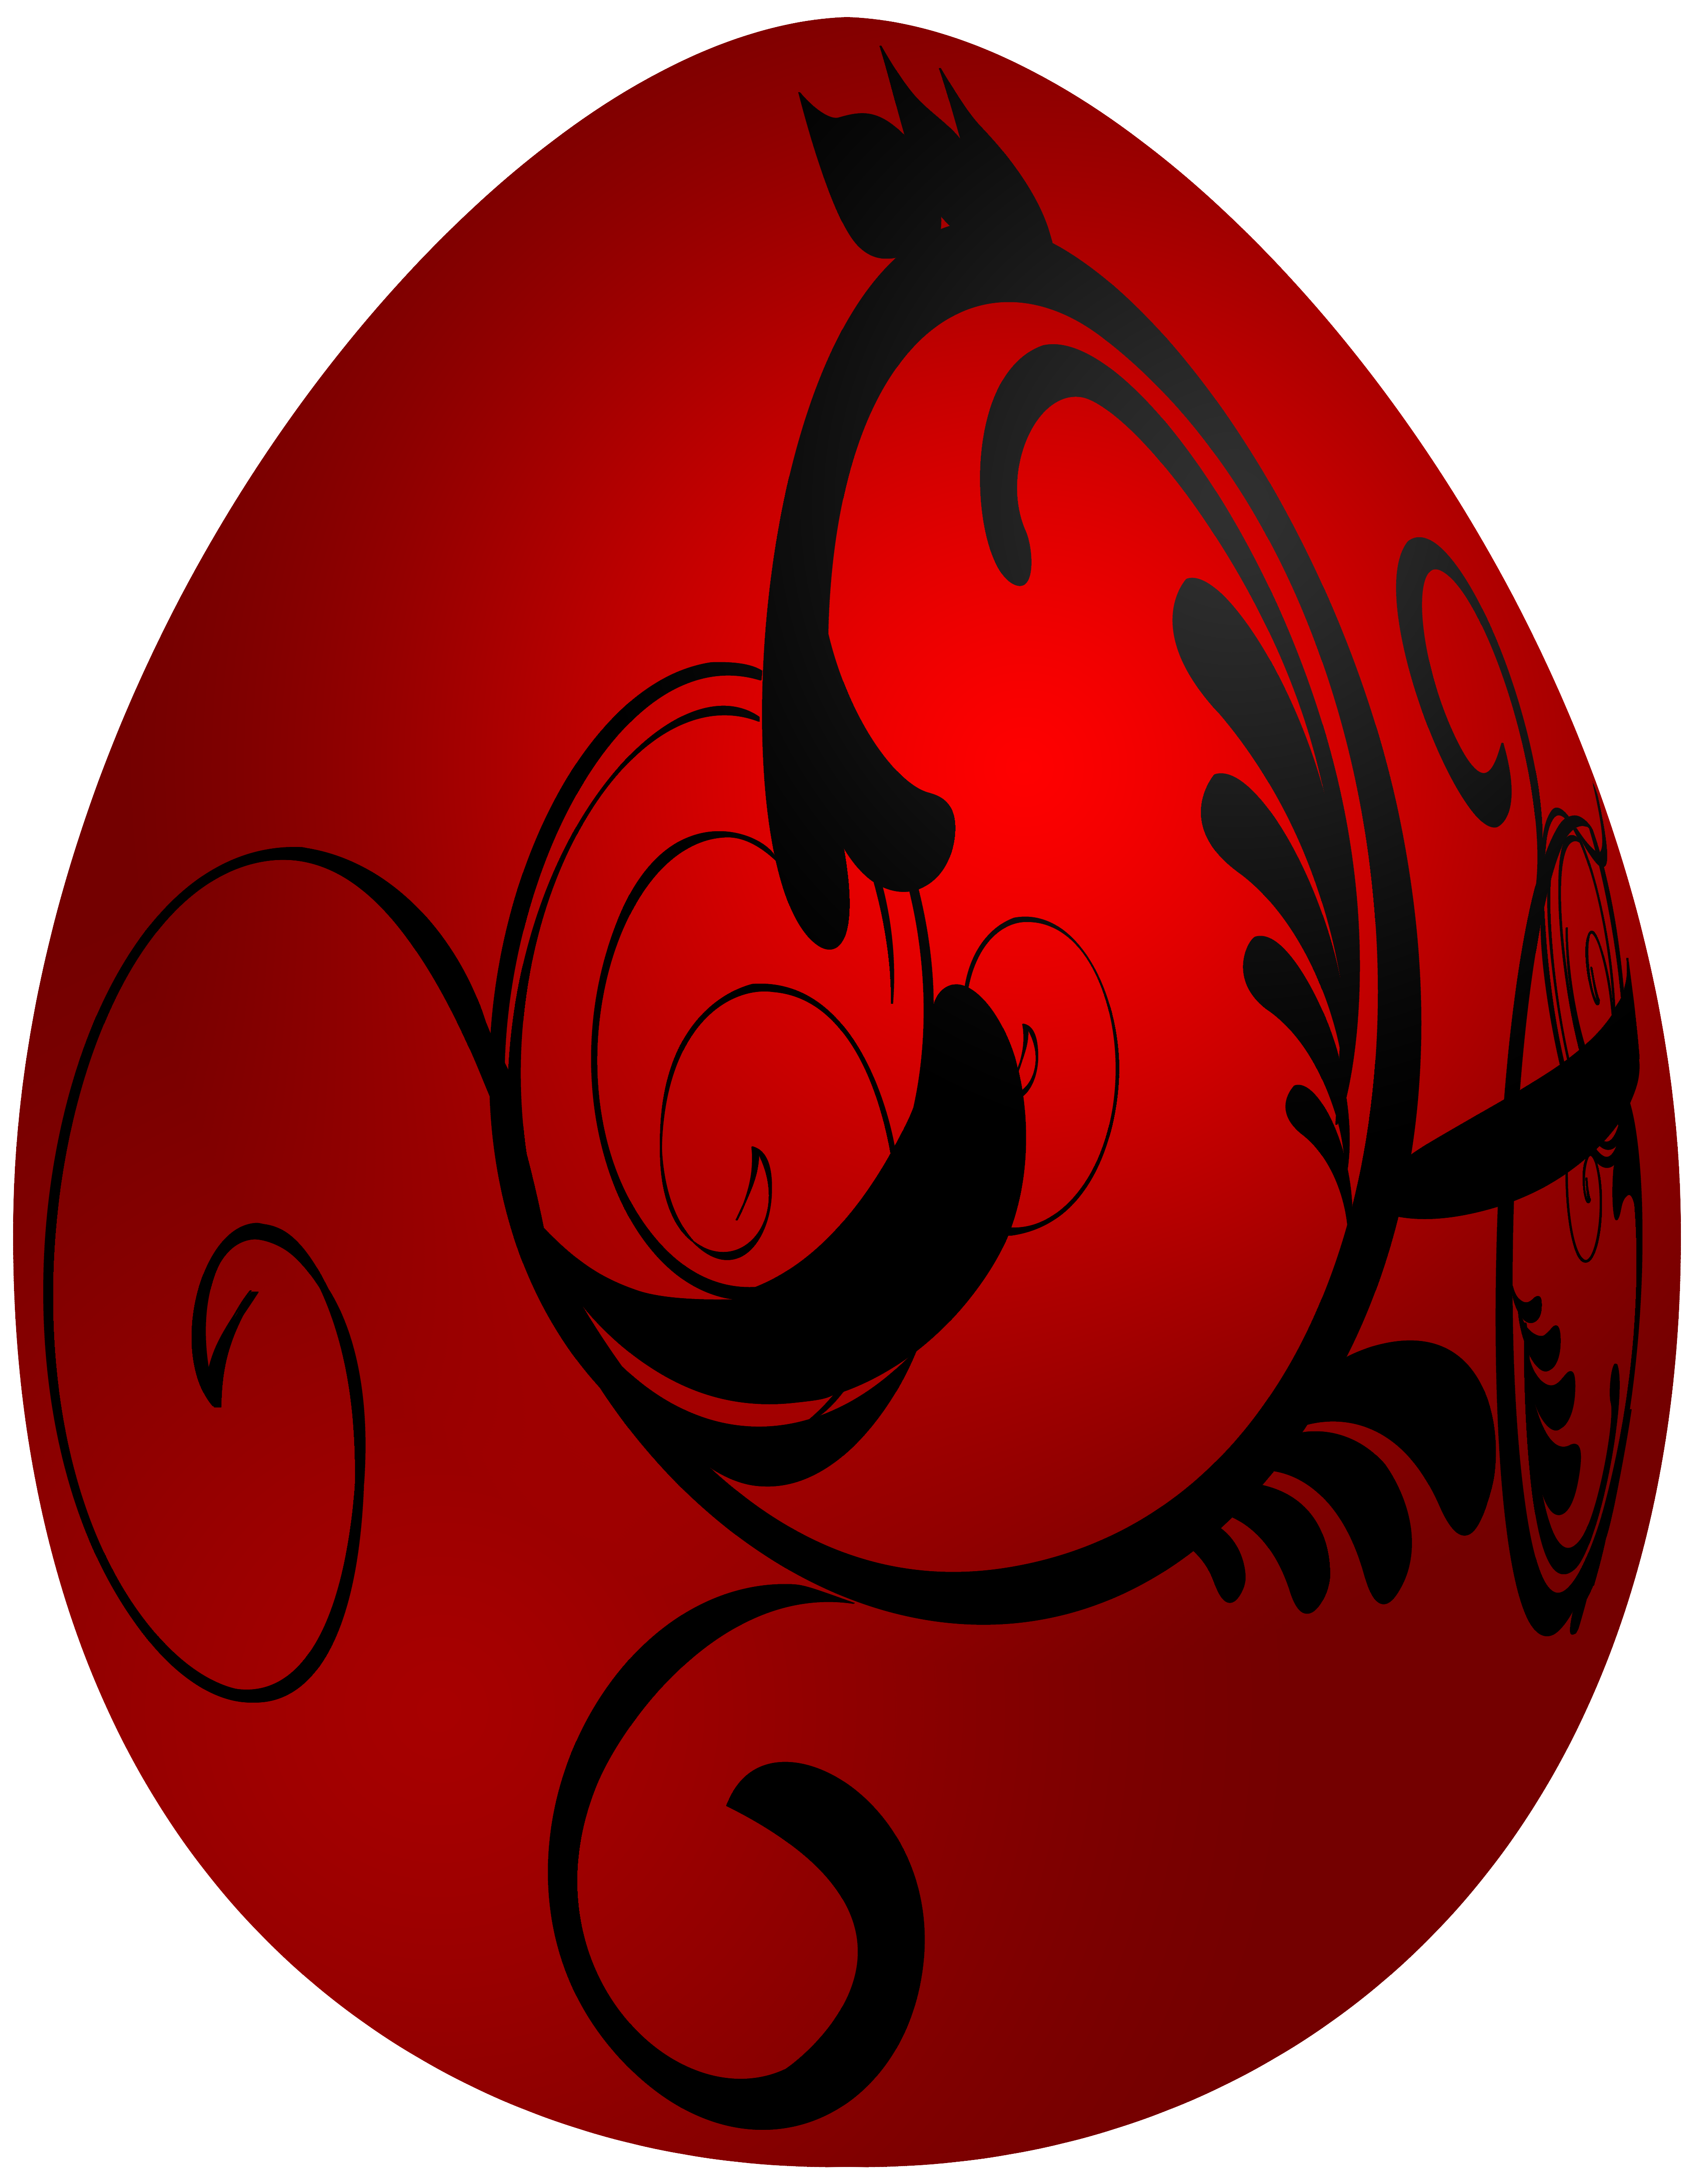 Easter red decorative png. Egg clipart soup